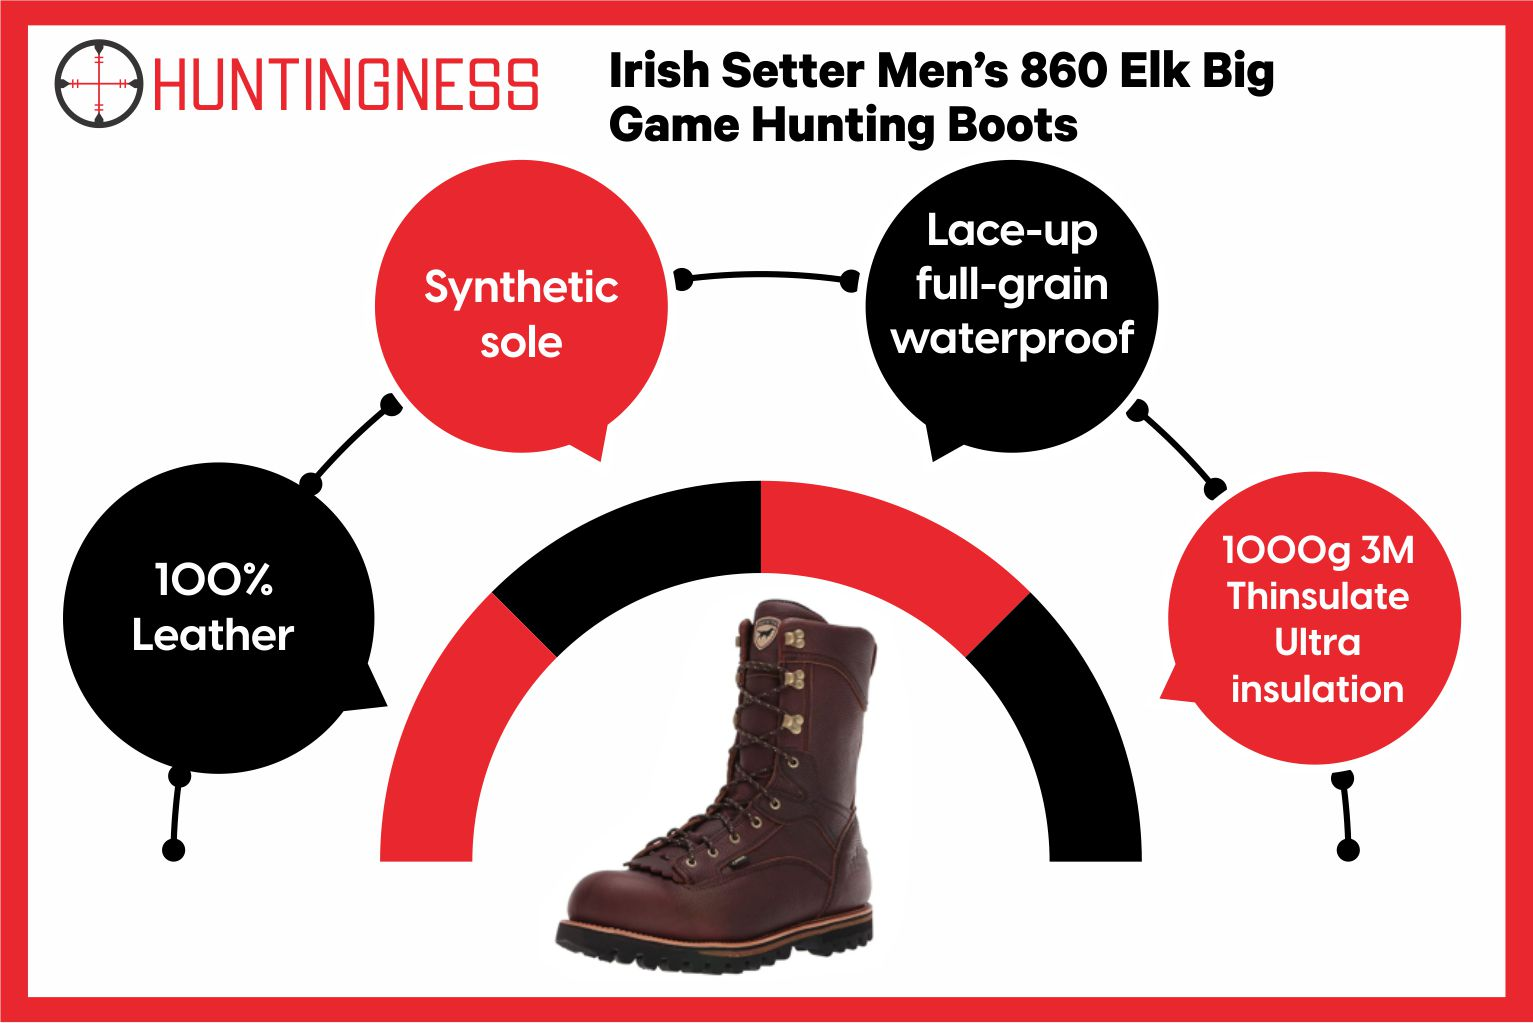 Irish Setter Men's 860 Elk Big Game Hunting Boots infographics